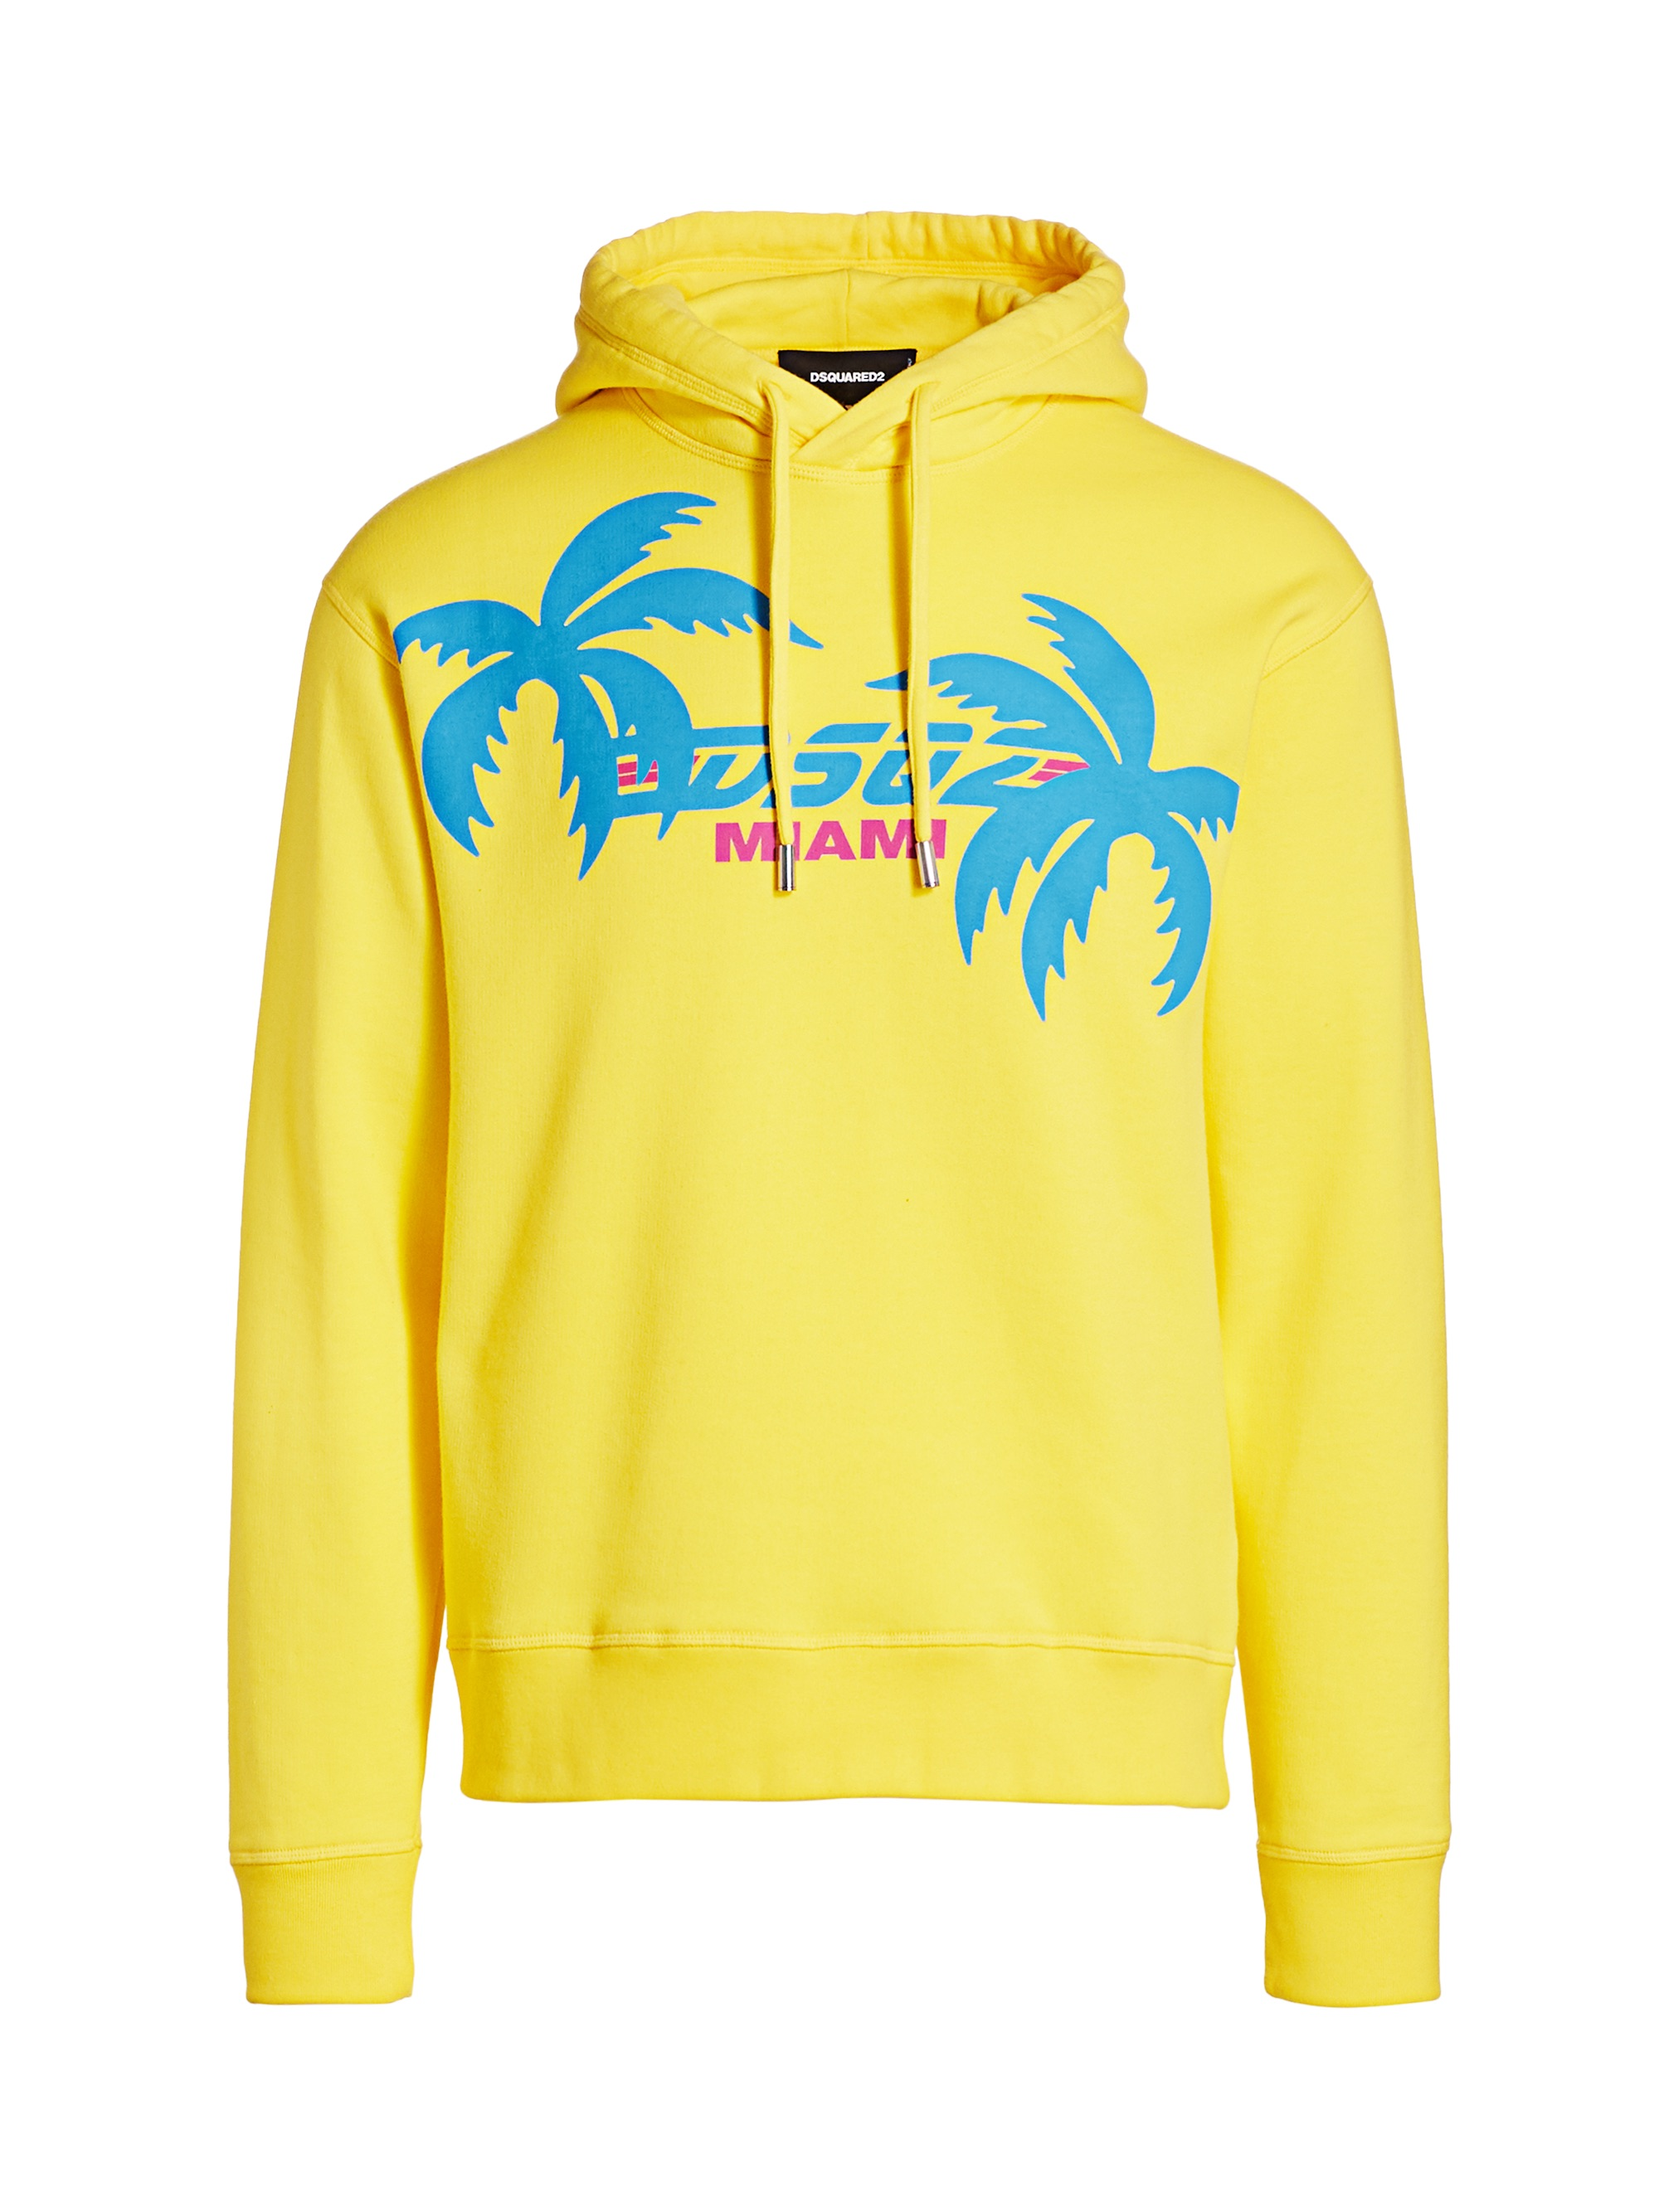 DSquared2's hoodie